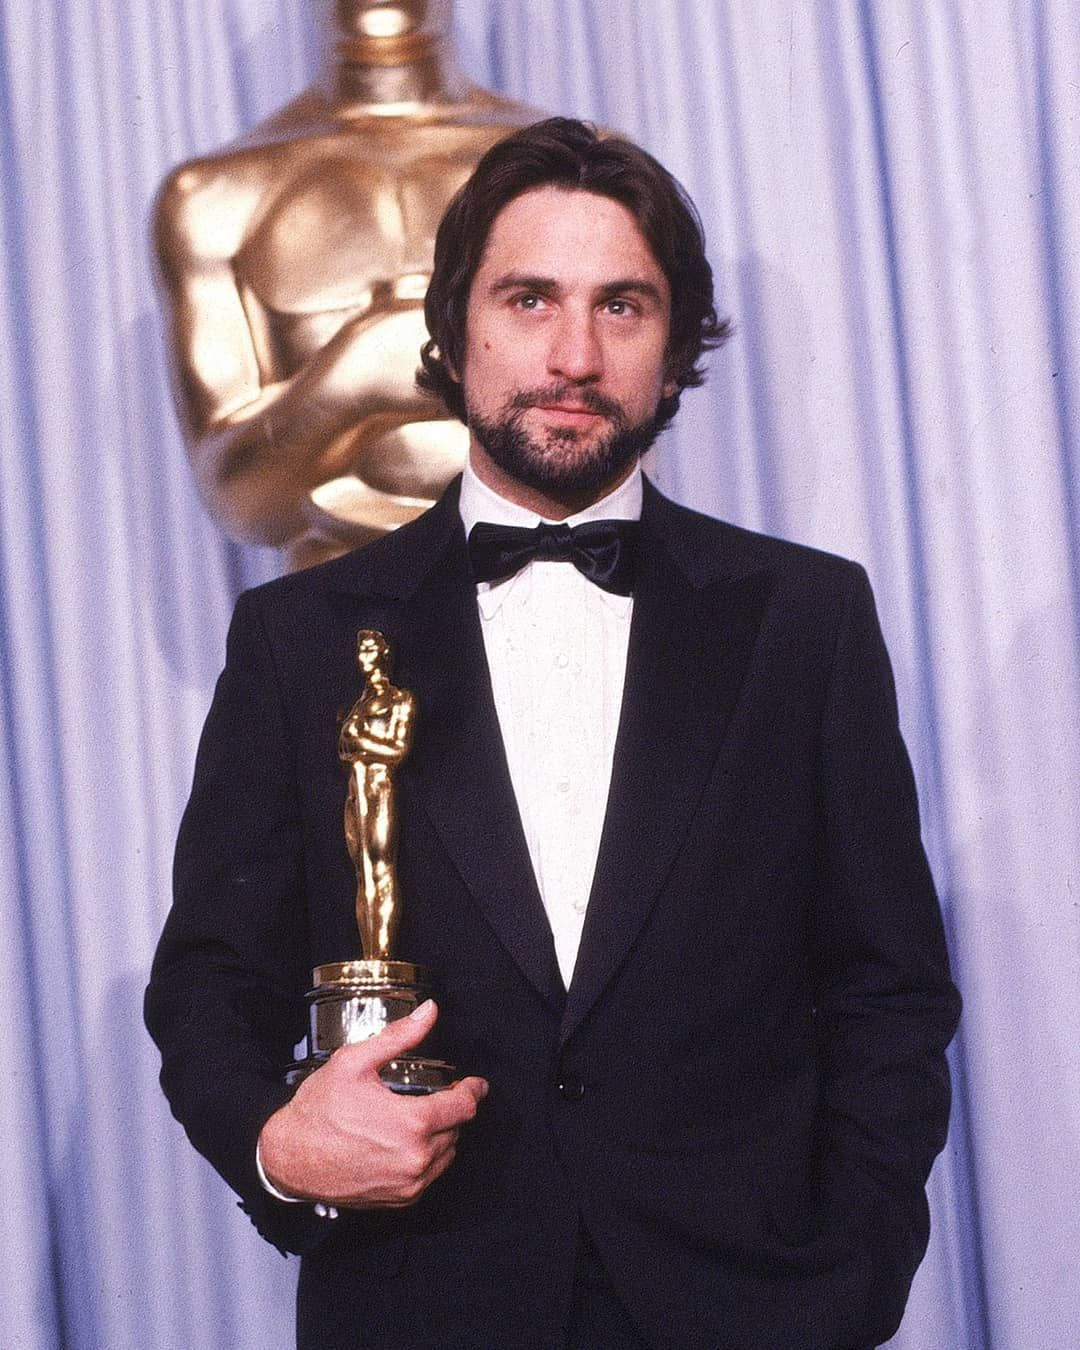 39f8b316c1667cd5e07f4c687e5aaff3 10 Actors Who Seriously Injured Themselves To Win An Oscar